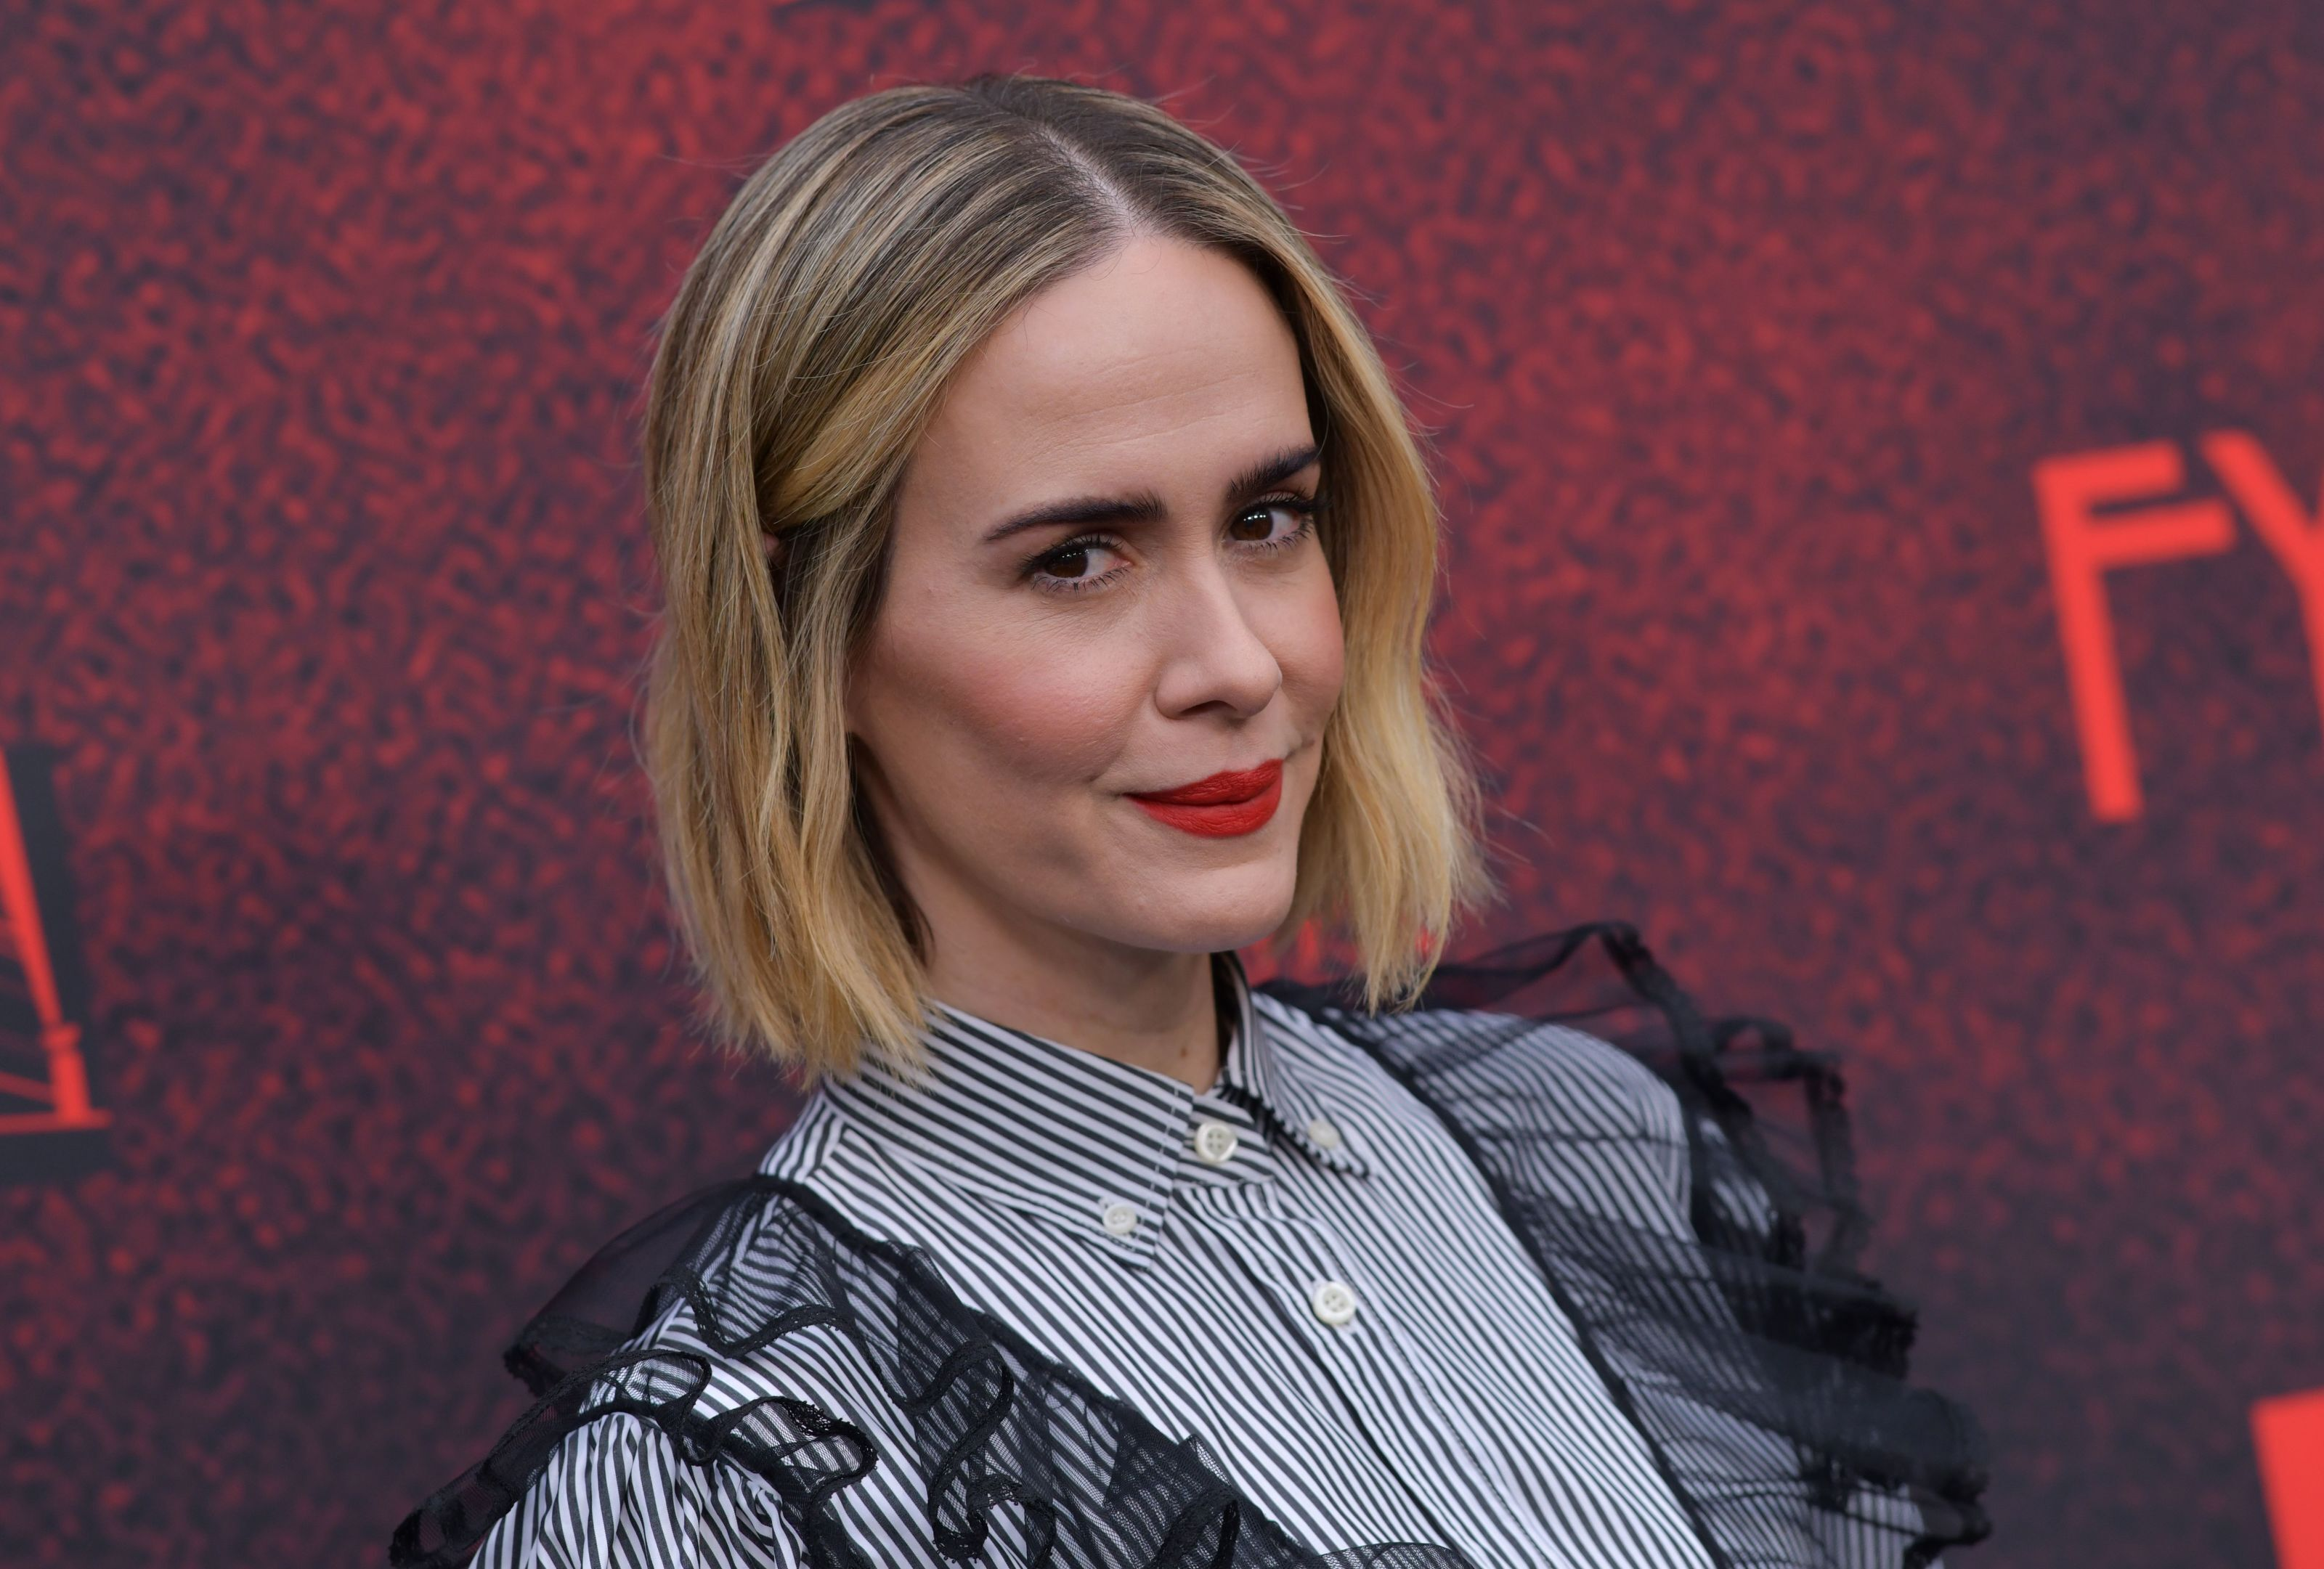 Sarah Paulson's exit from American Horror Story: 1984 isn't a good sign for the series